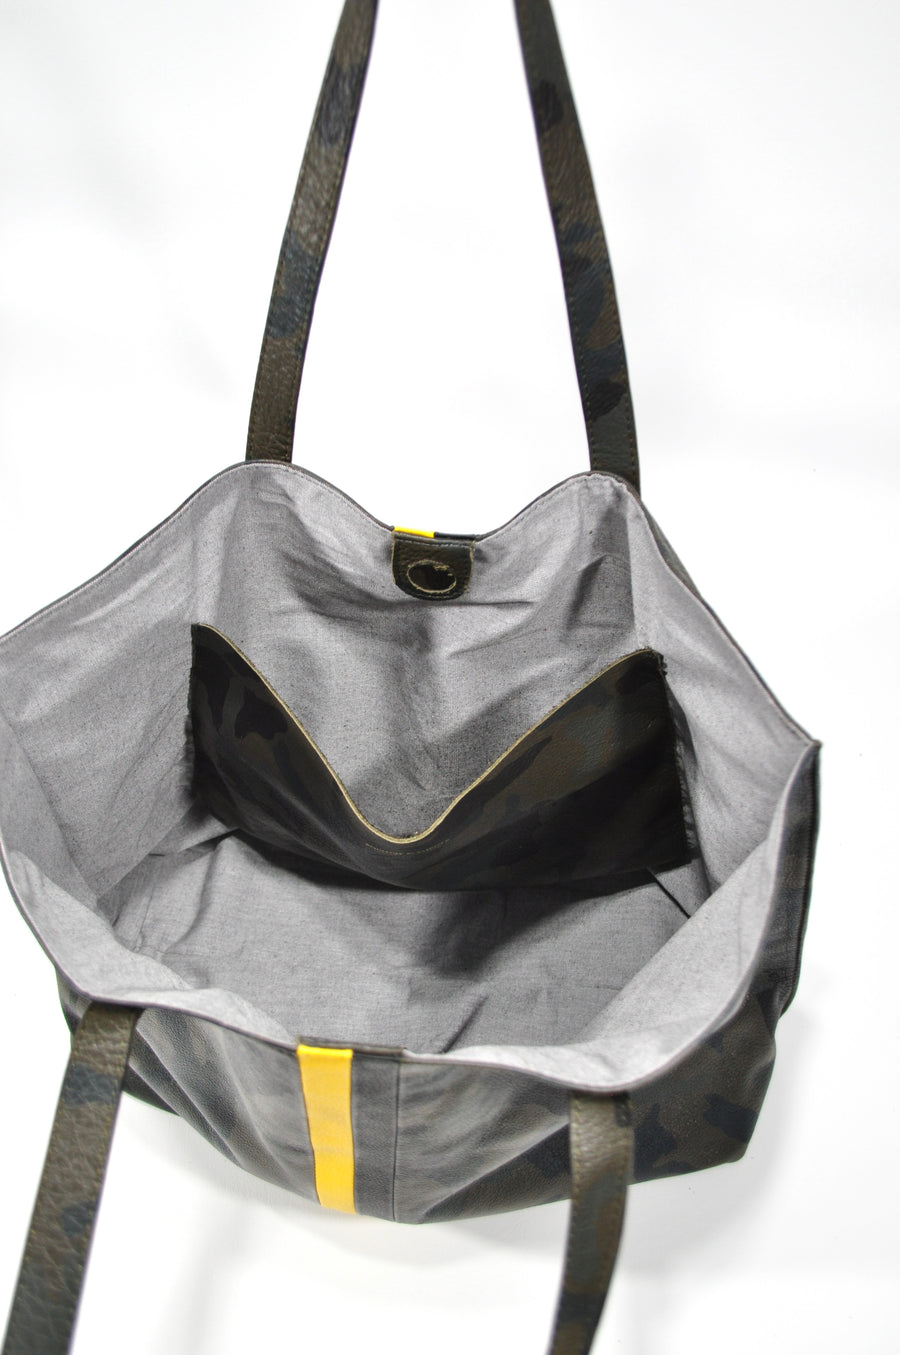 Edge Leather Tote Green With Yellow/black - Positive Elements